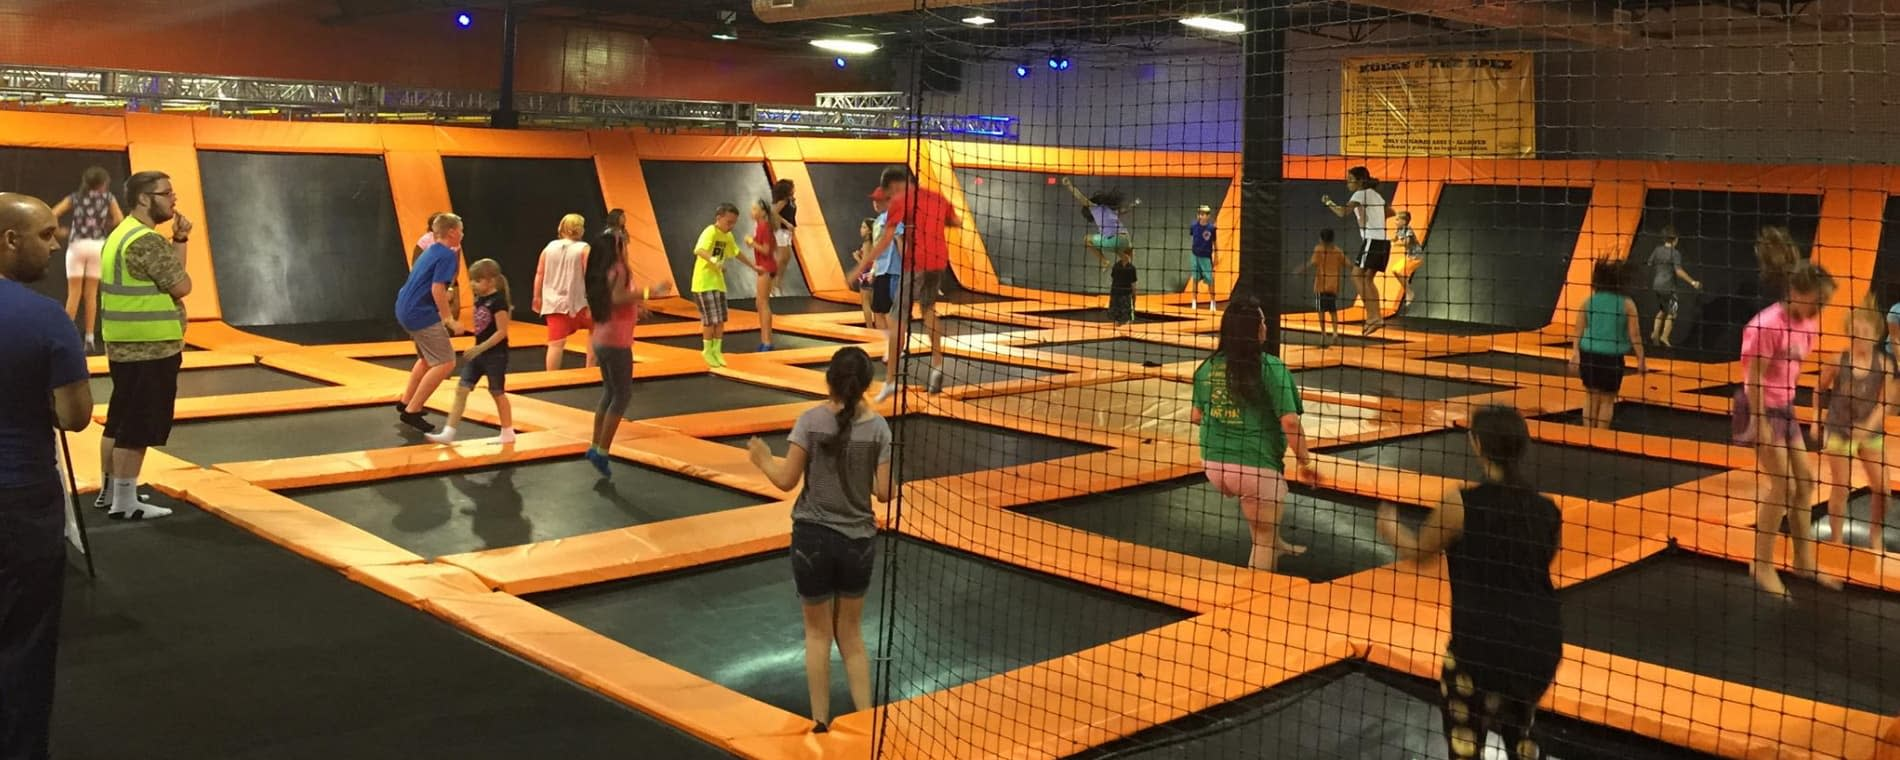 Urban Air Trampoline Park in Wichita